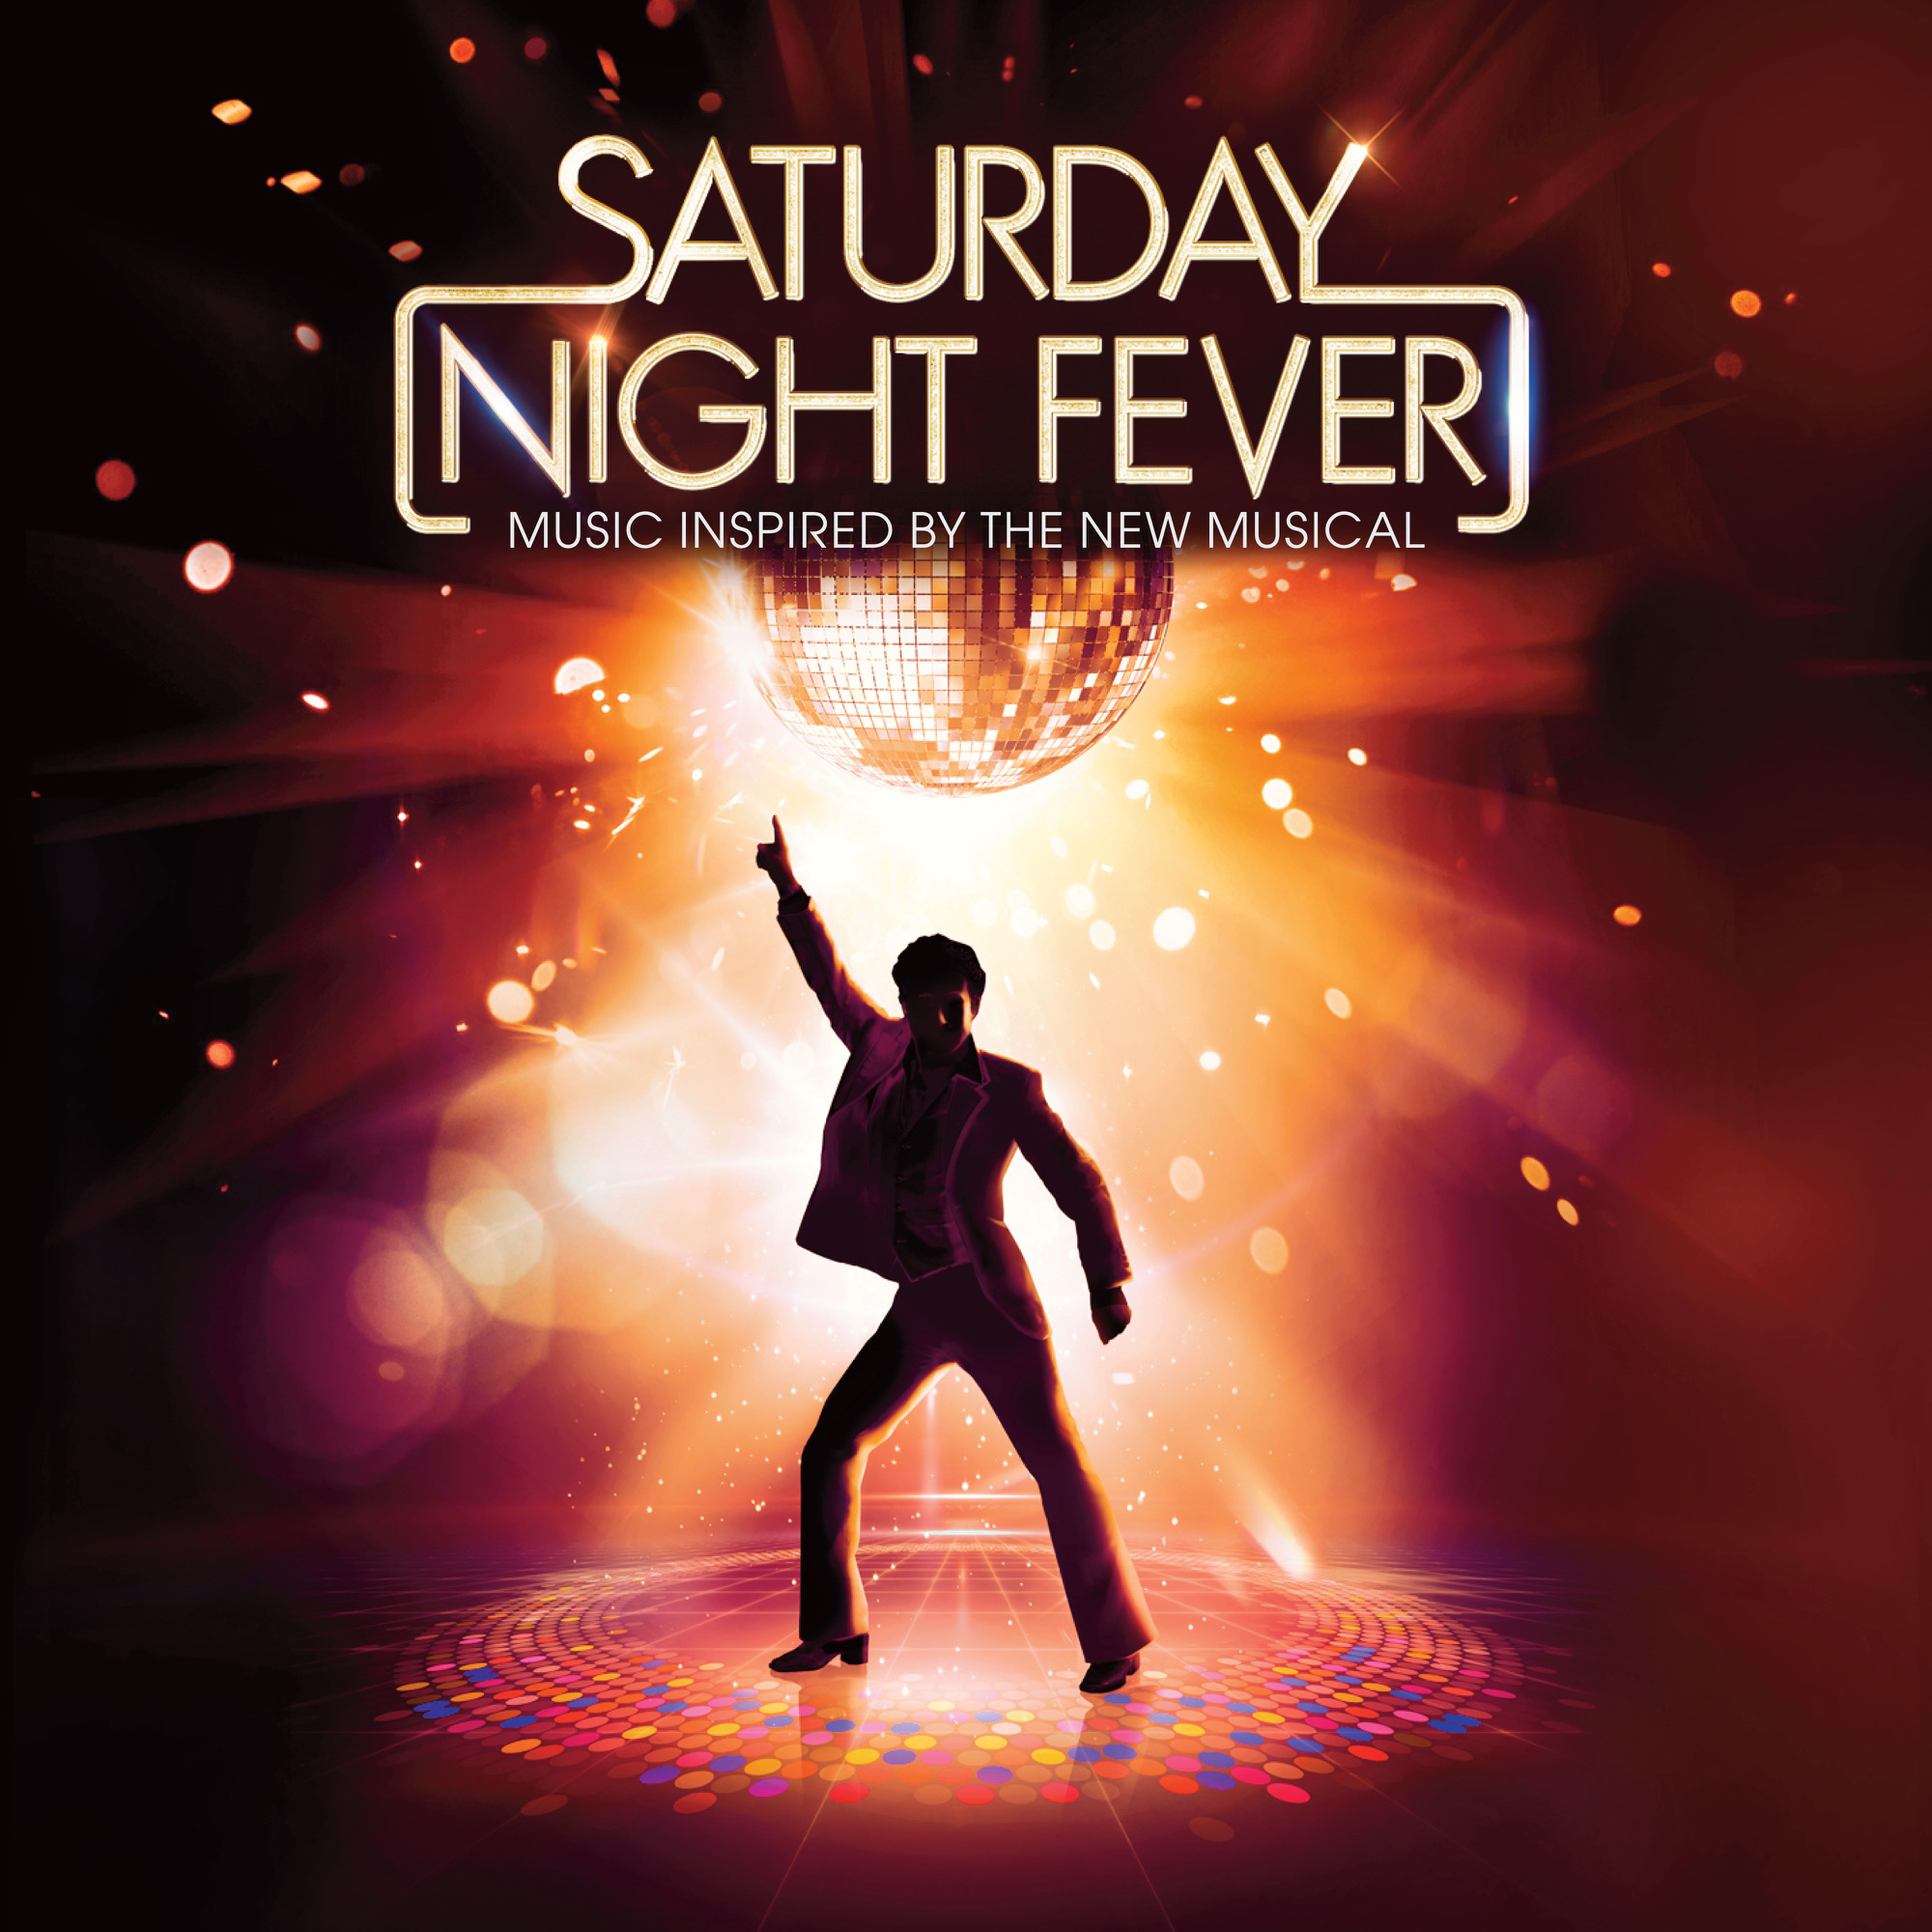 saturday-night-fever-le-spectacle-musical-album-tribute-couverture-kylie-minogue-stayin-alive-julian-perretta-wea-warner-music